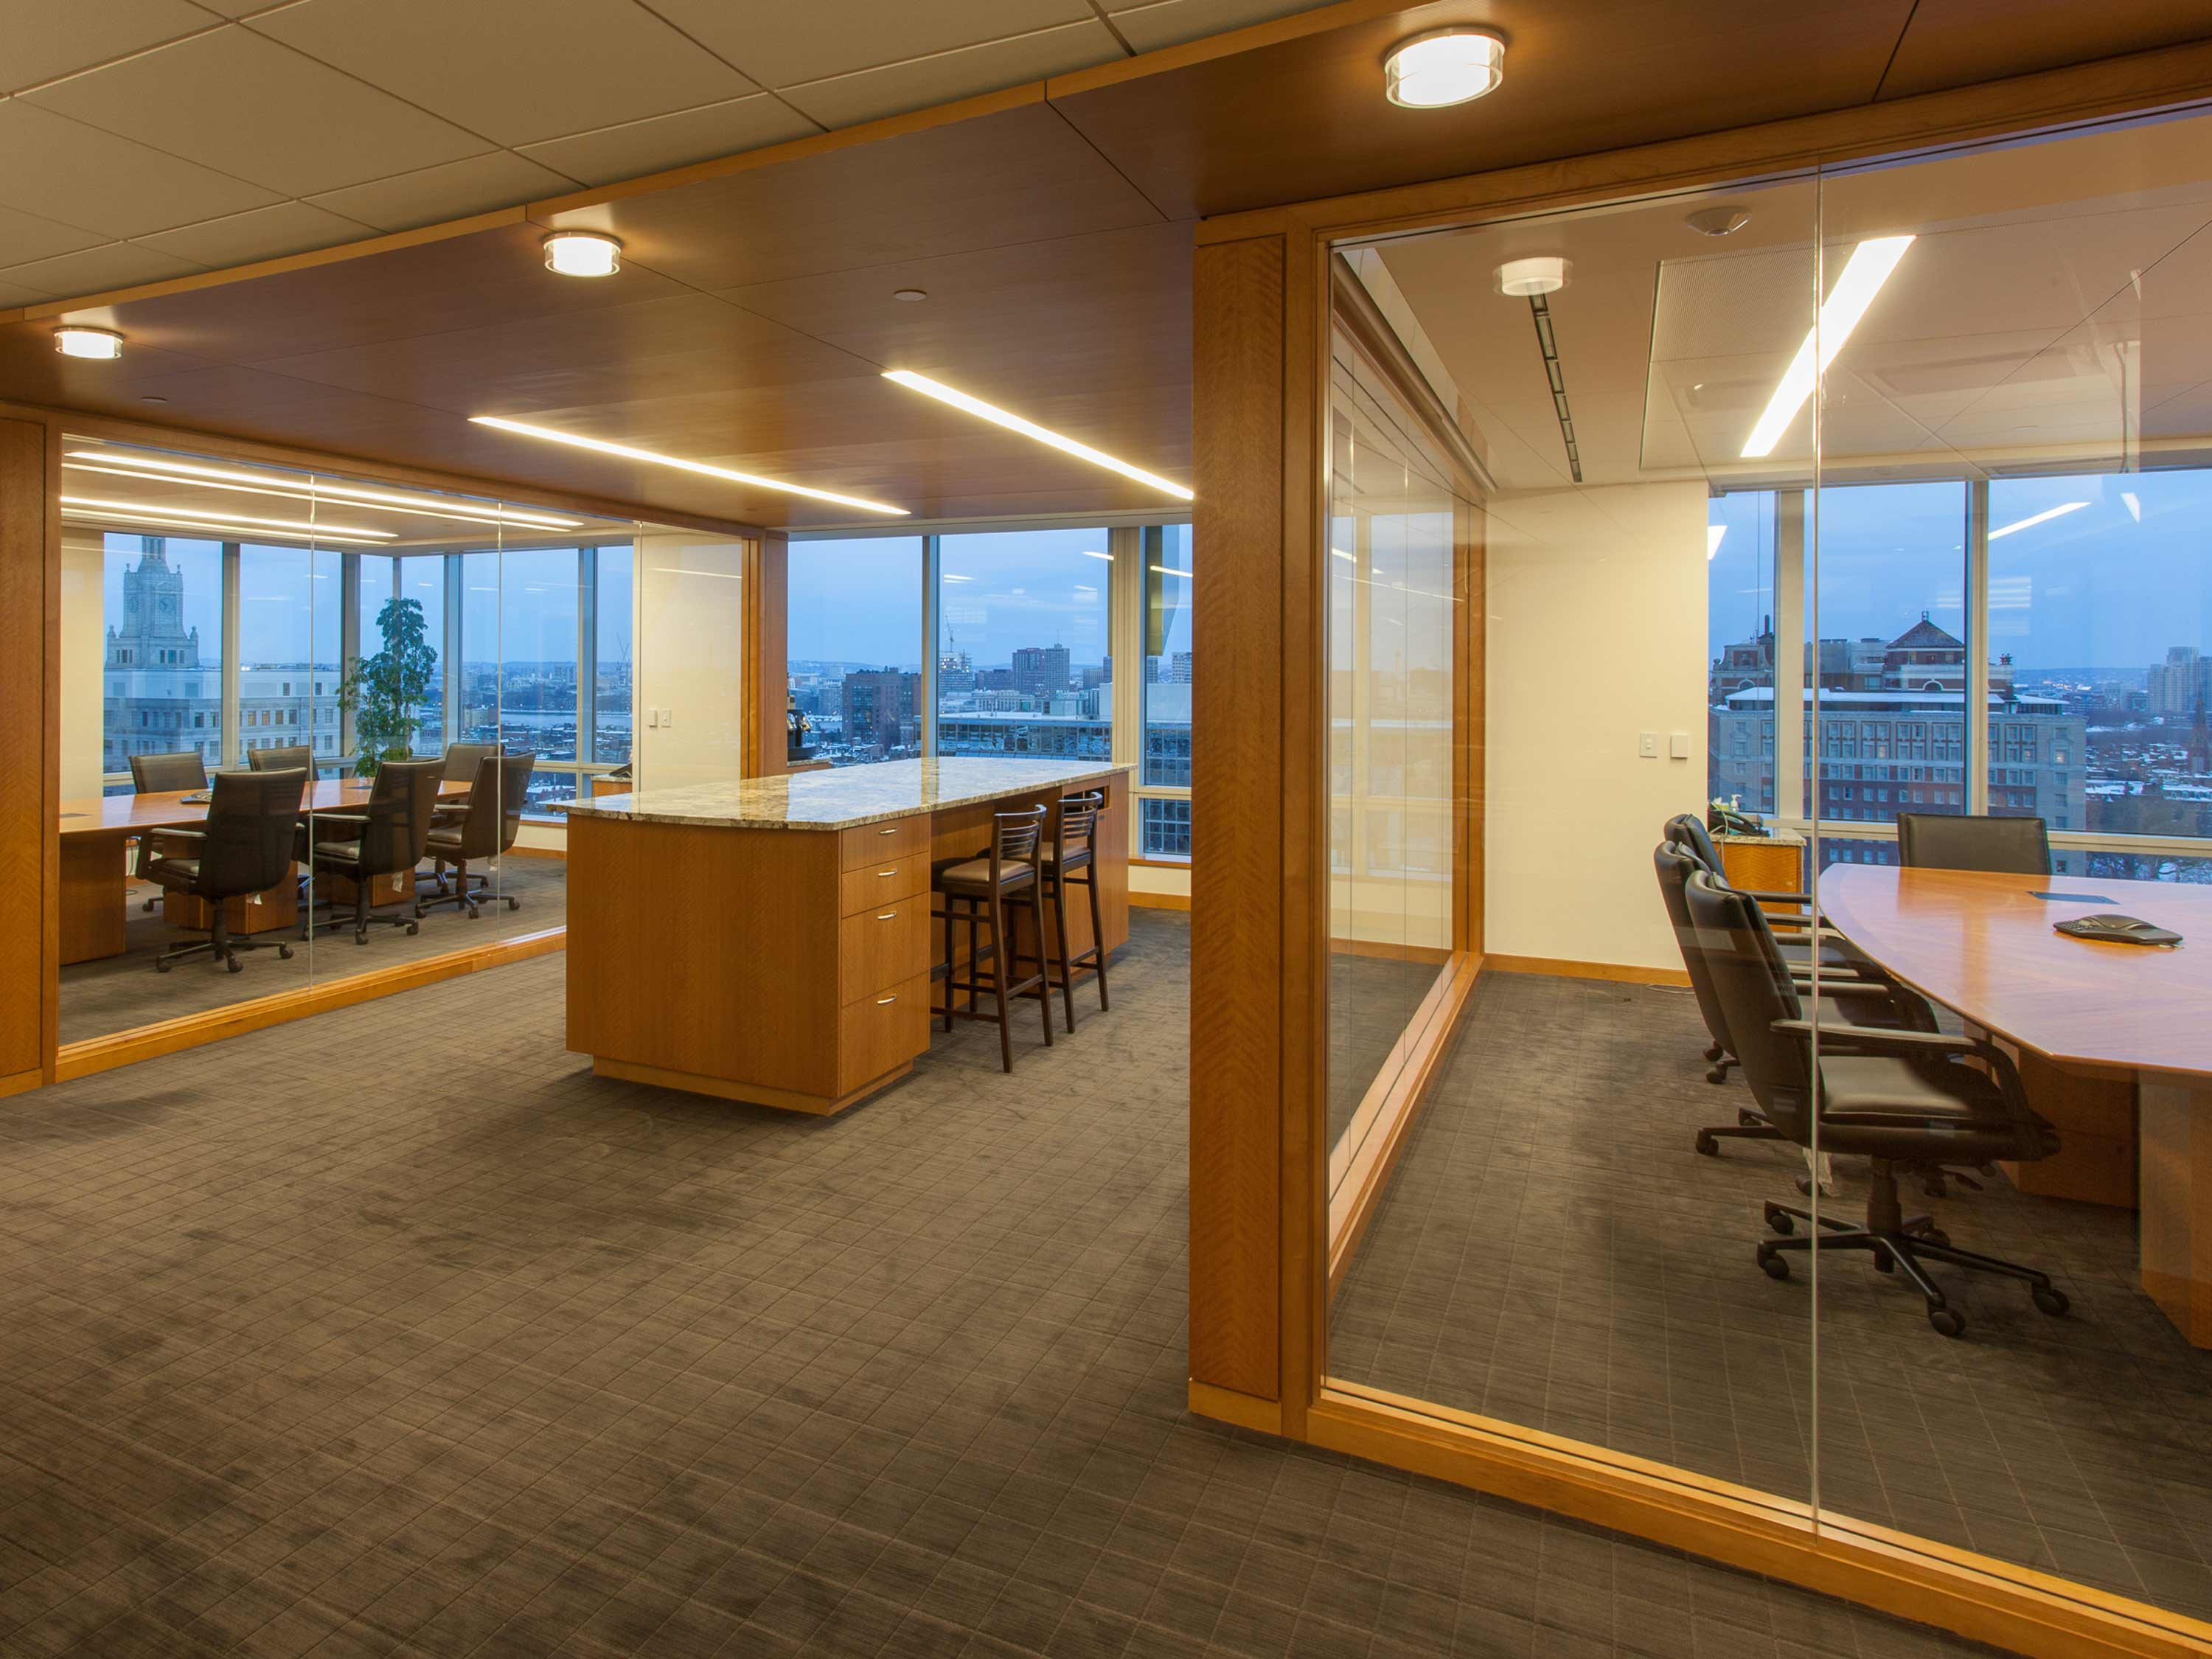 Designing for millennials the top workplace features for for Office design considerations